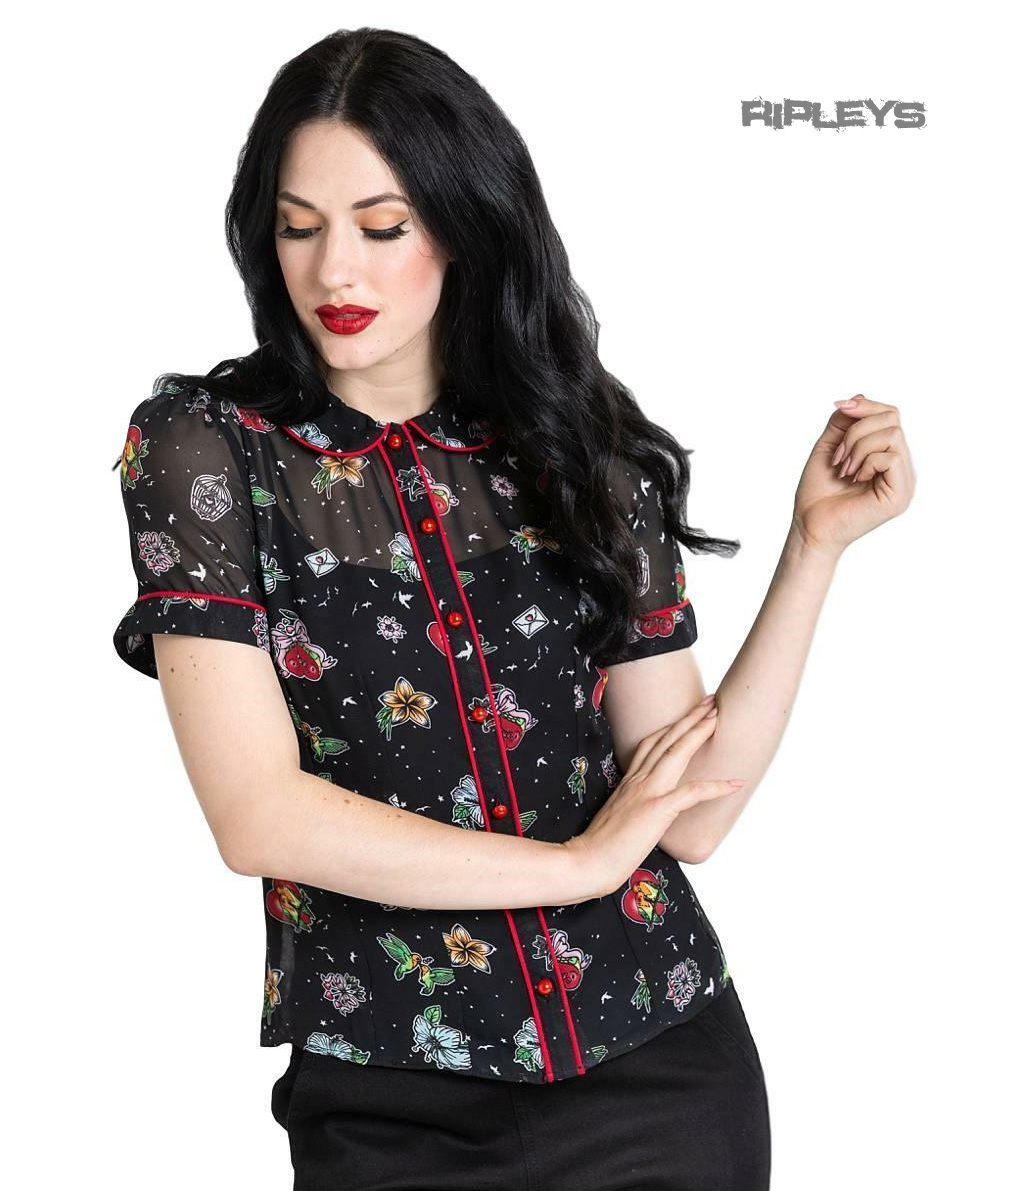 Hell-Bunny-Shirt-Top-Black-LOVEBIRD-Blouse-Retro-Vintage-Flowers-All-Sizes thumbnail 30